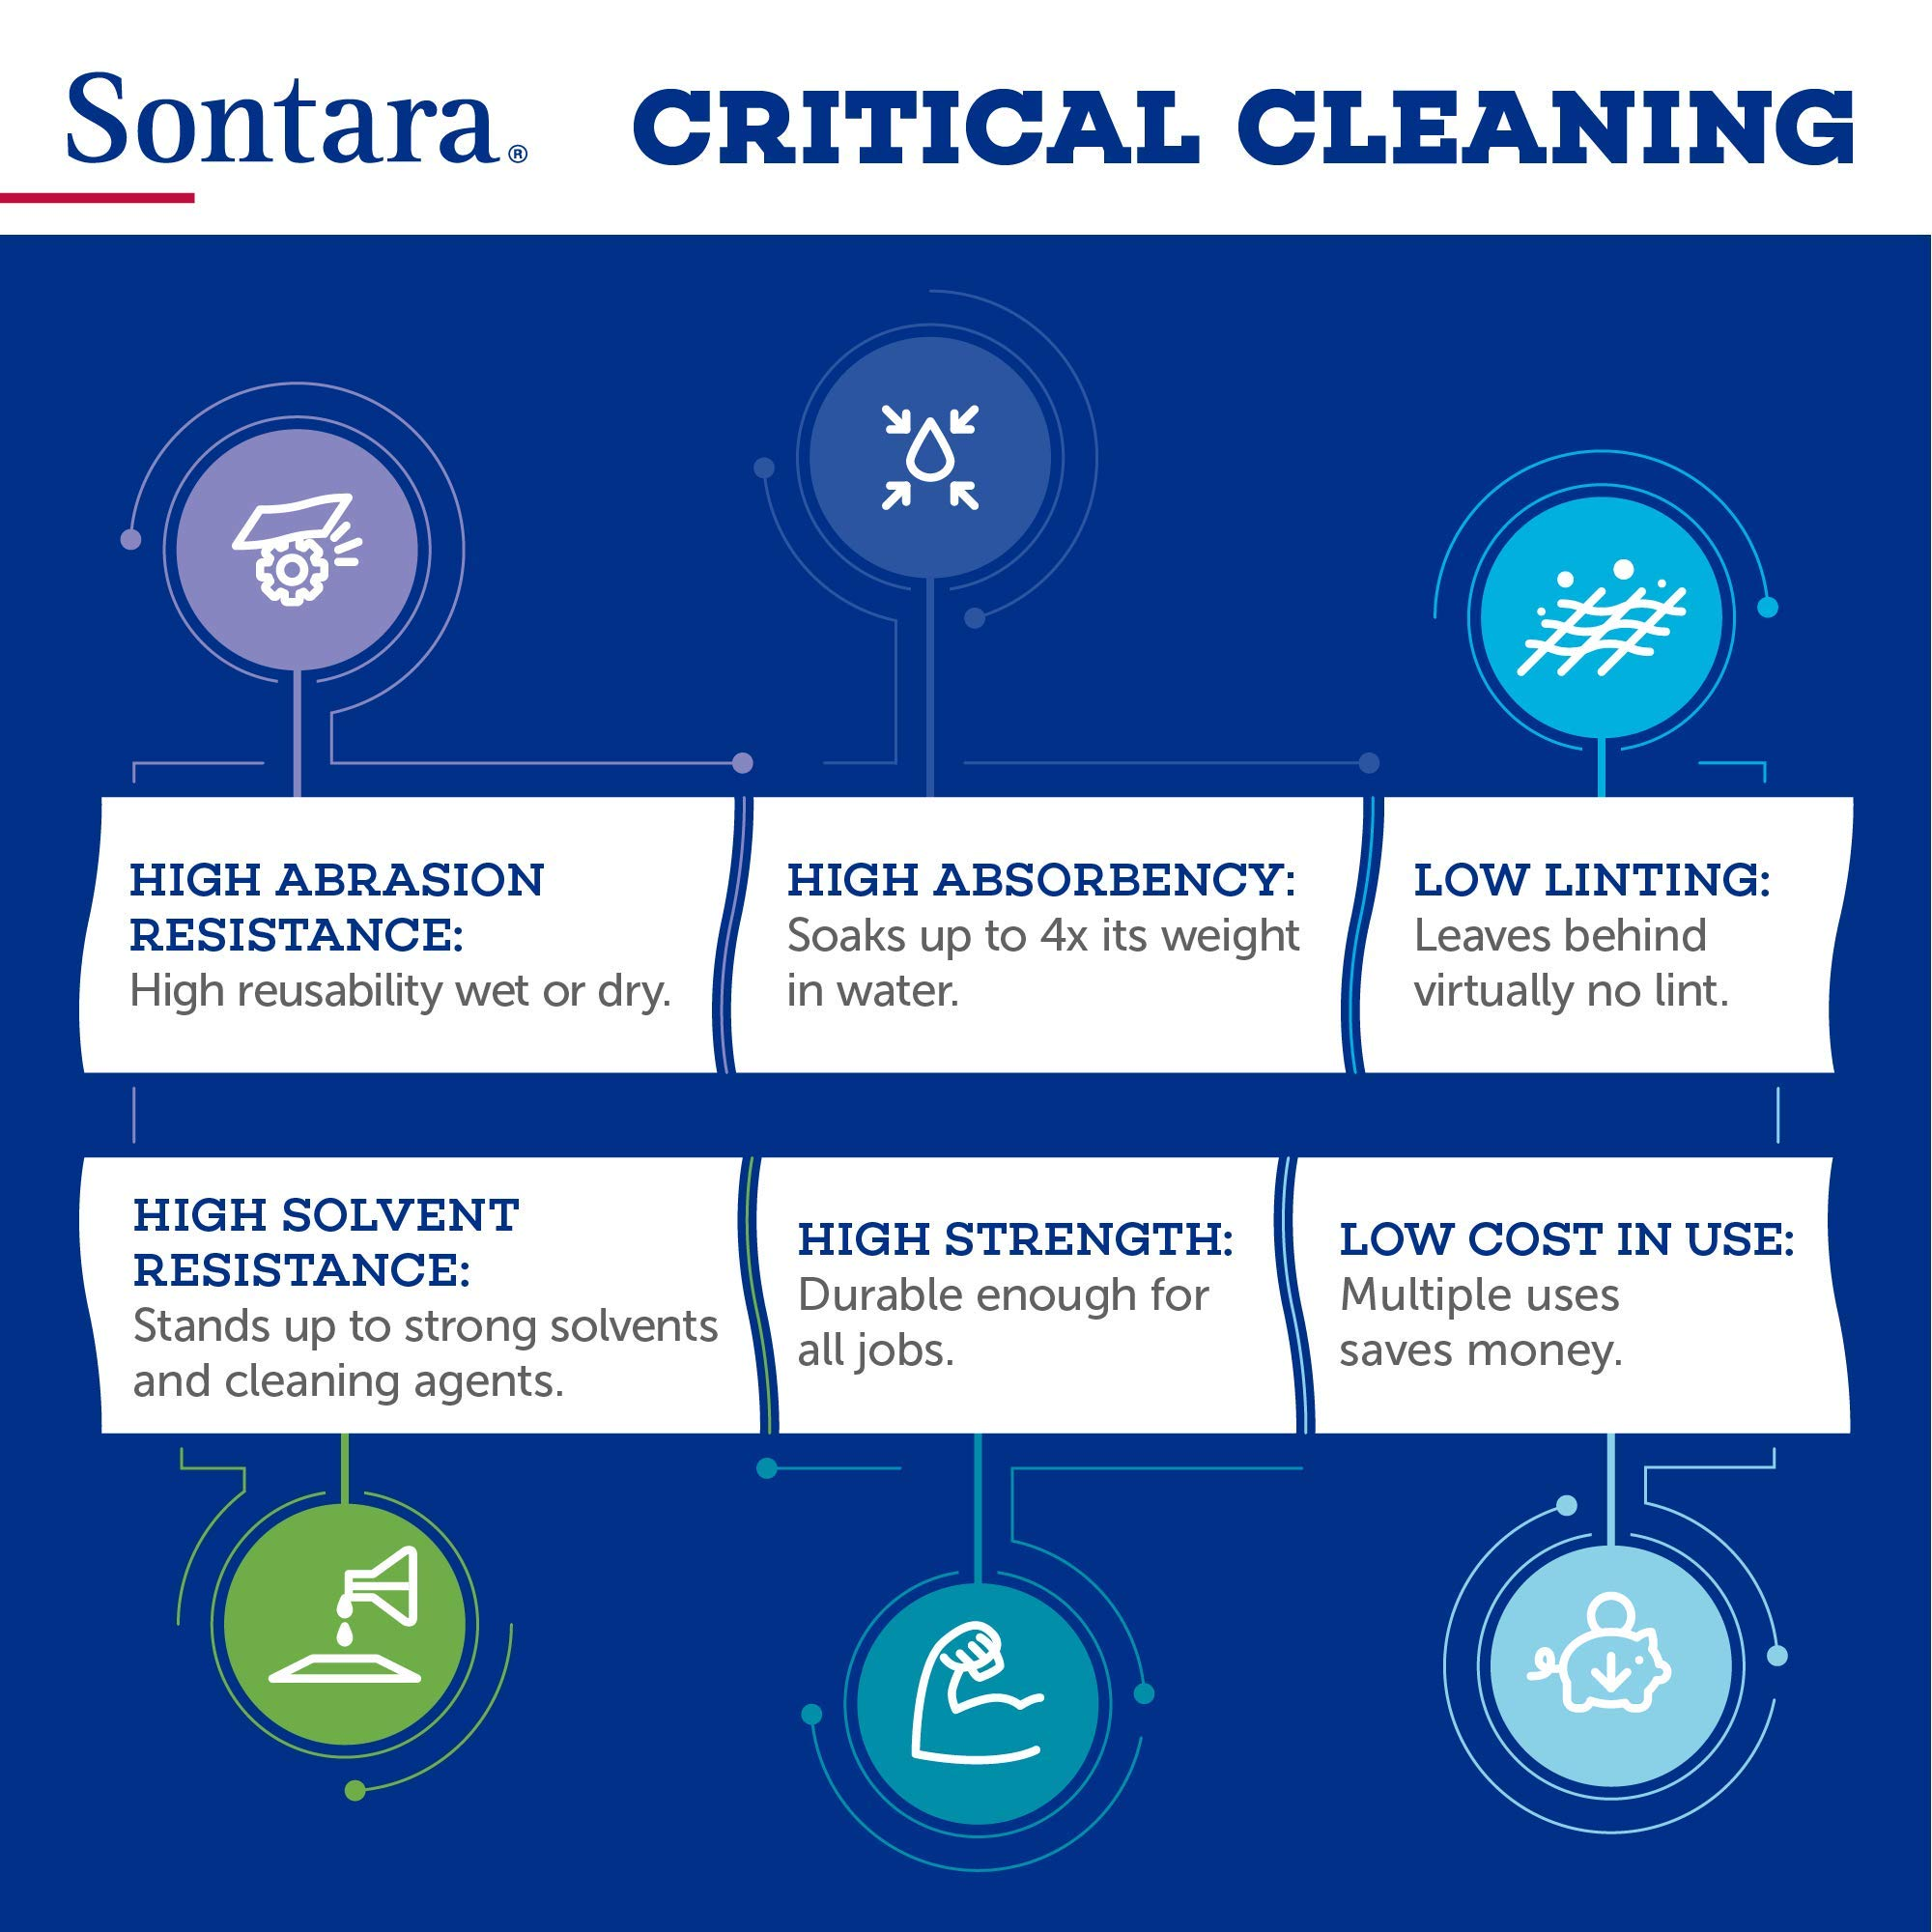 Sontara Engineered Cloth Wipers, E775, Blue, 12'' x 13.25'', (Total of 864 Wipes), (Case of 18 Packs, 48 Wipes Per Pack) by Sontara (Image #2)